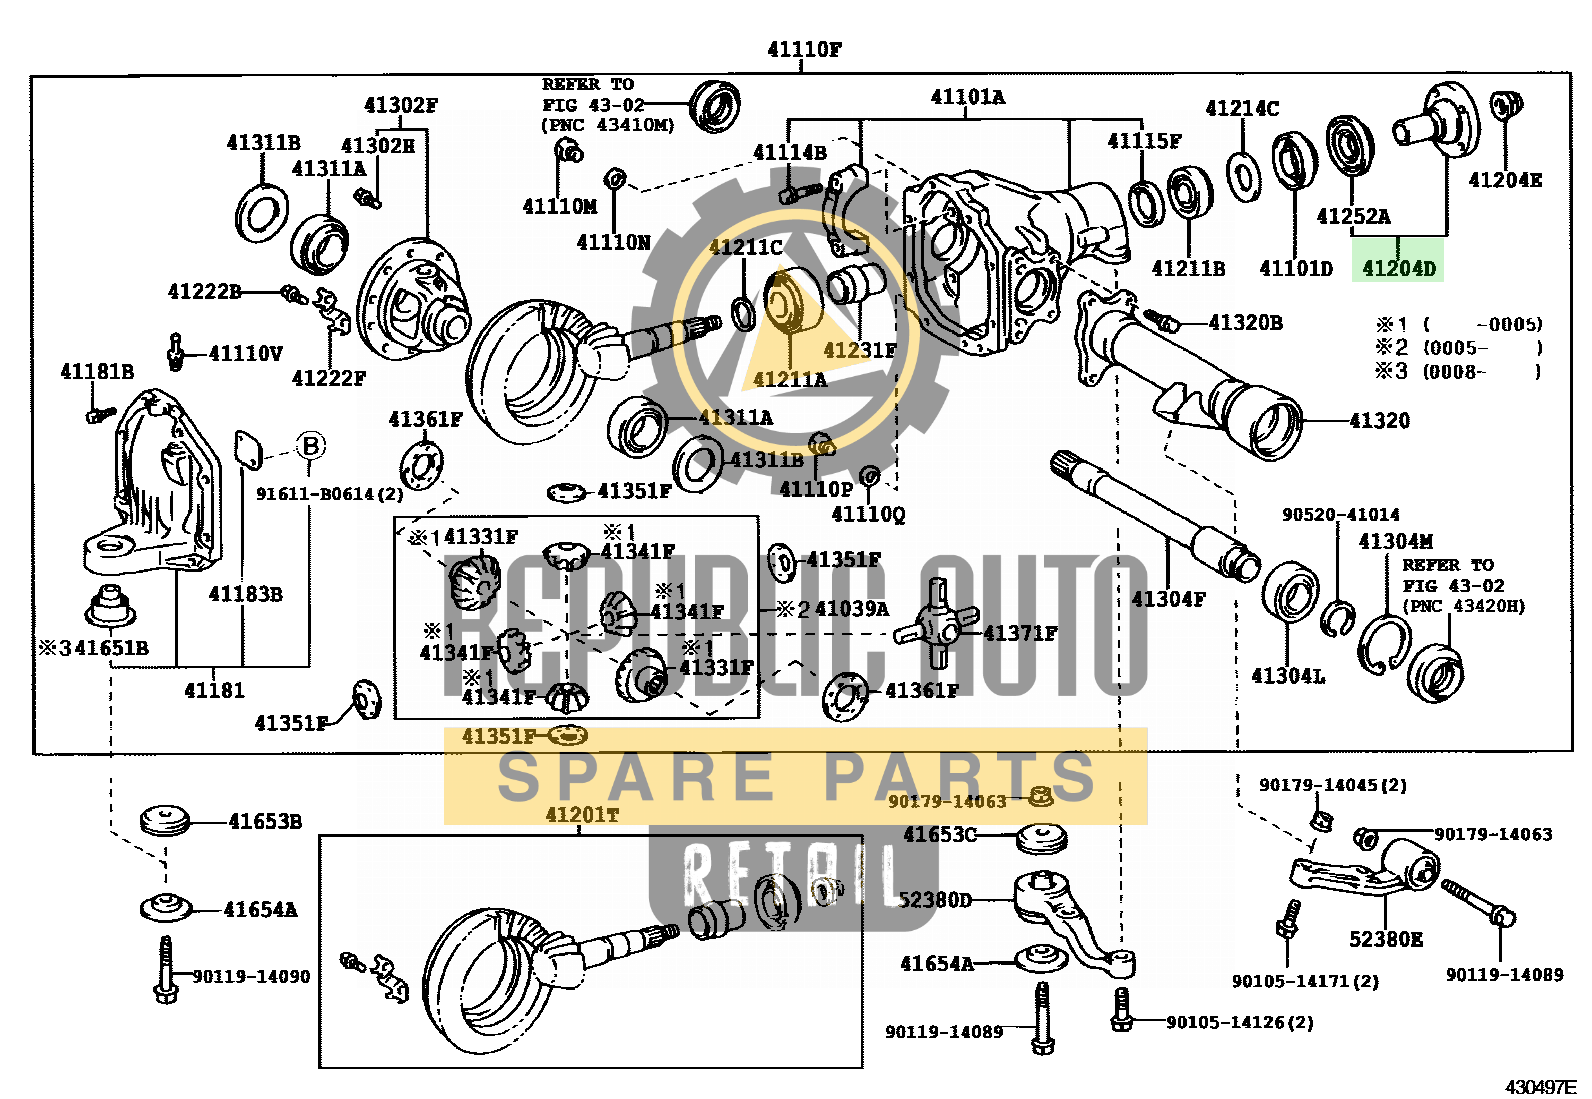 Part number: 41204-60040 	LAND CRUISER 100 791450 (UZJ100L-GNPEKA) / FRONT AXLE HOUSING & DIFFERENTIAL